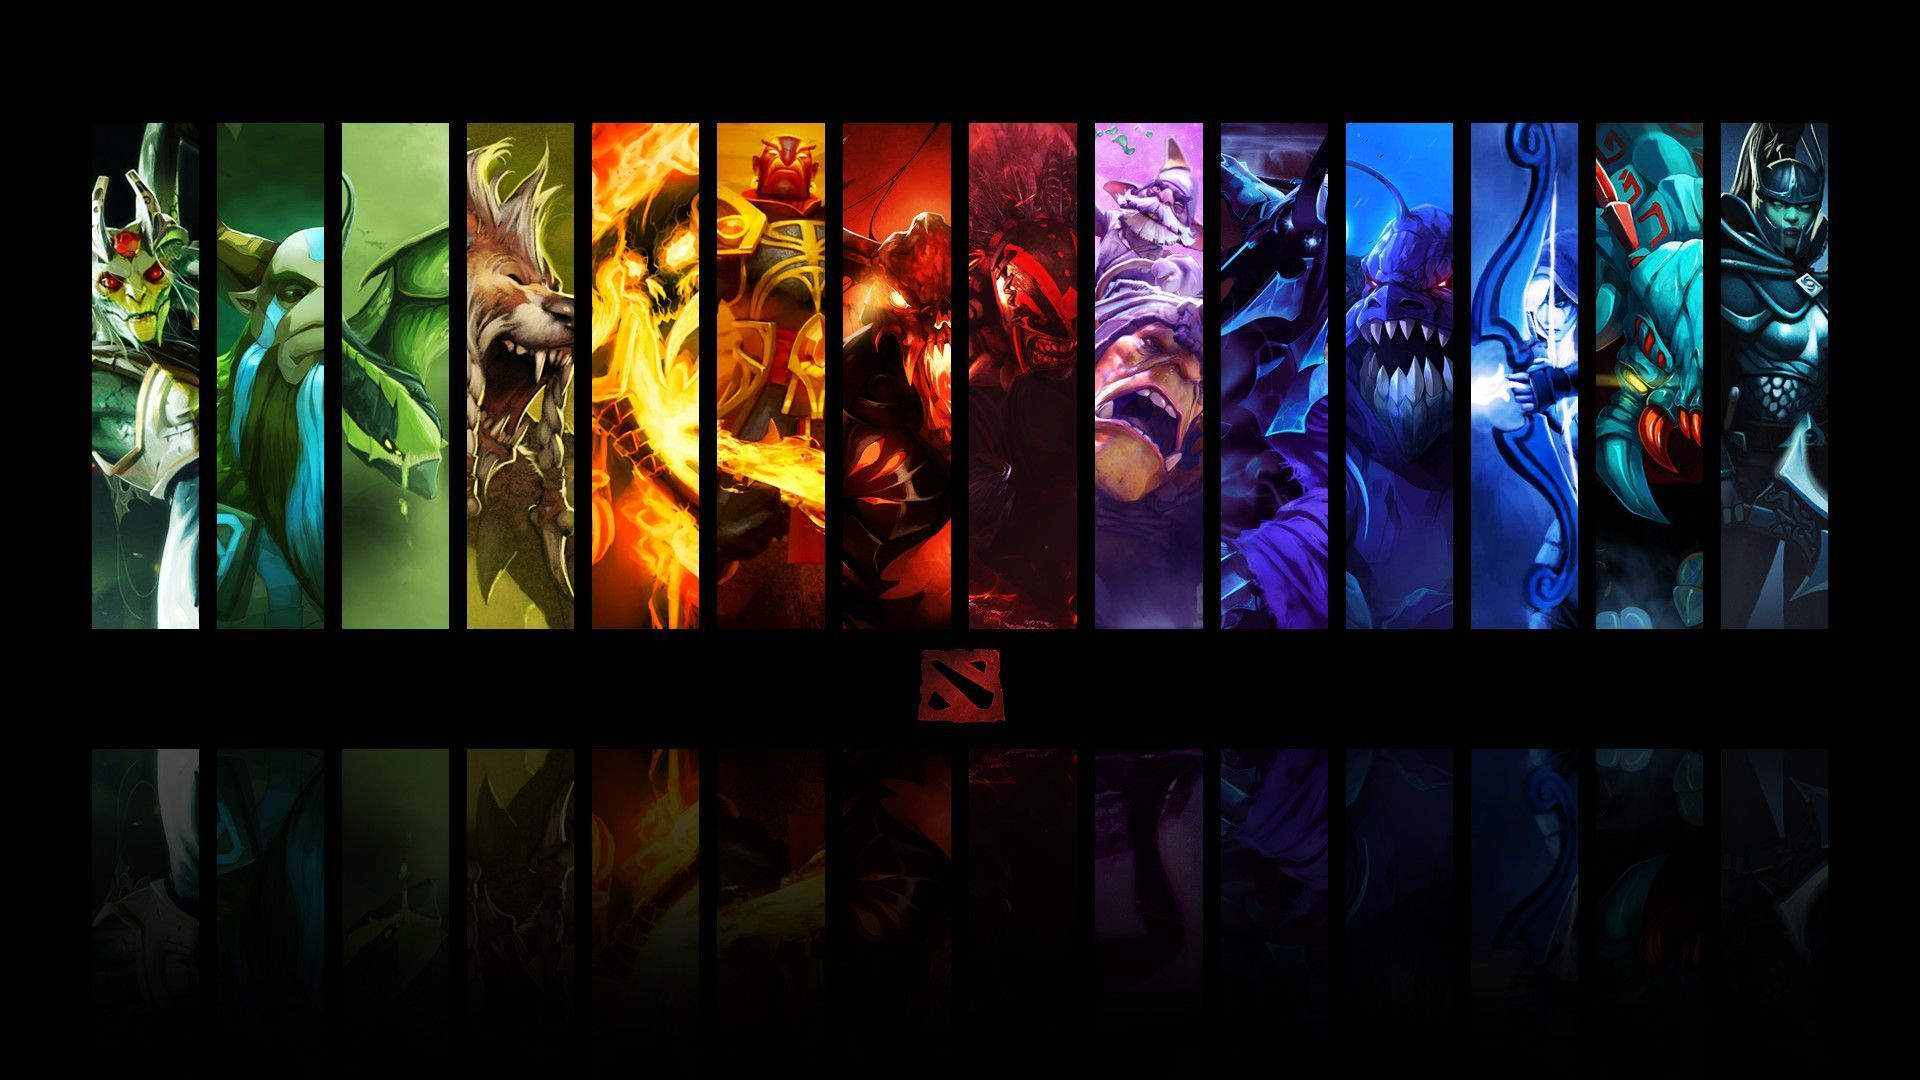 Vertical Dota 2 Hd Wallpaper 19201080 19201080 For Windows 10 4k Full Hd 4k Hero Wallpaper Background Images Desktop Background Pictures